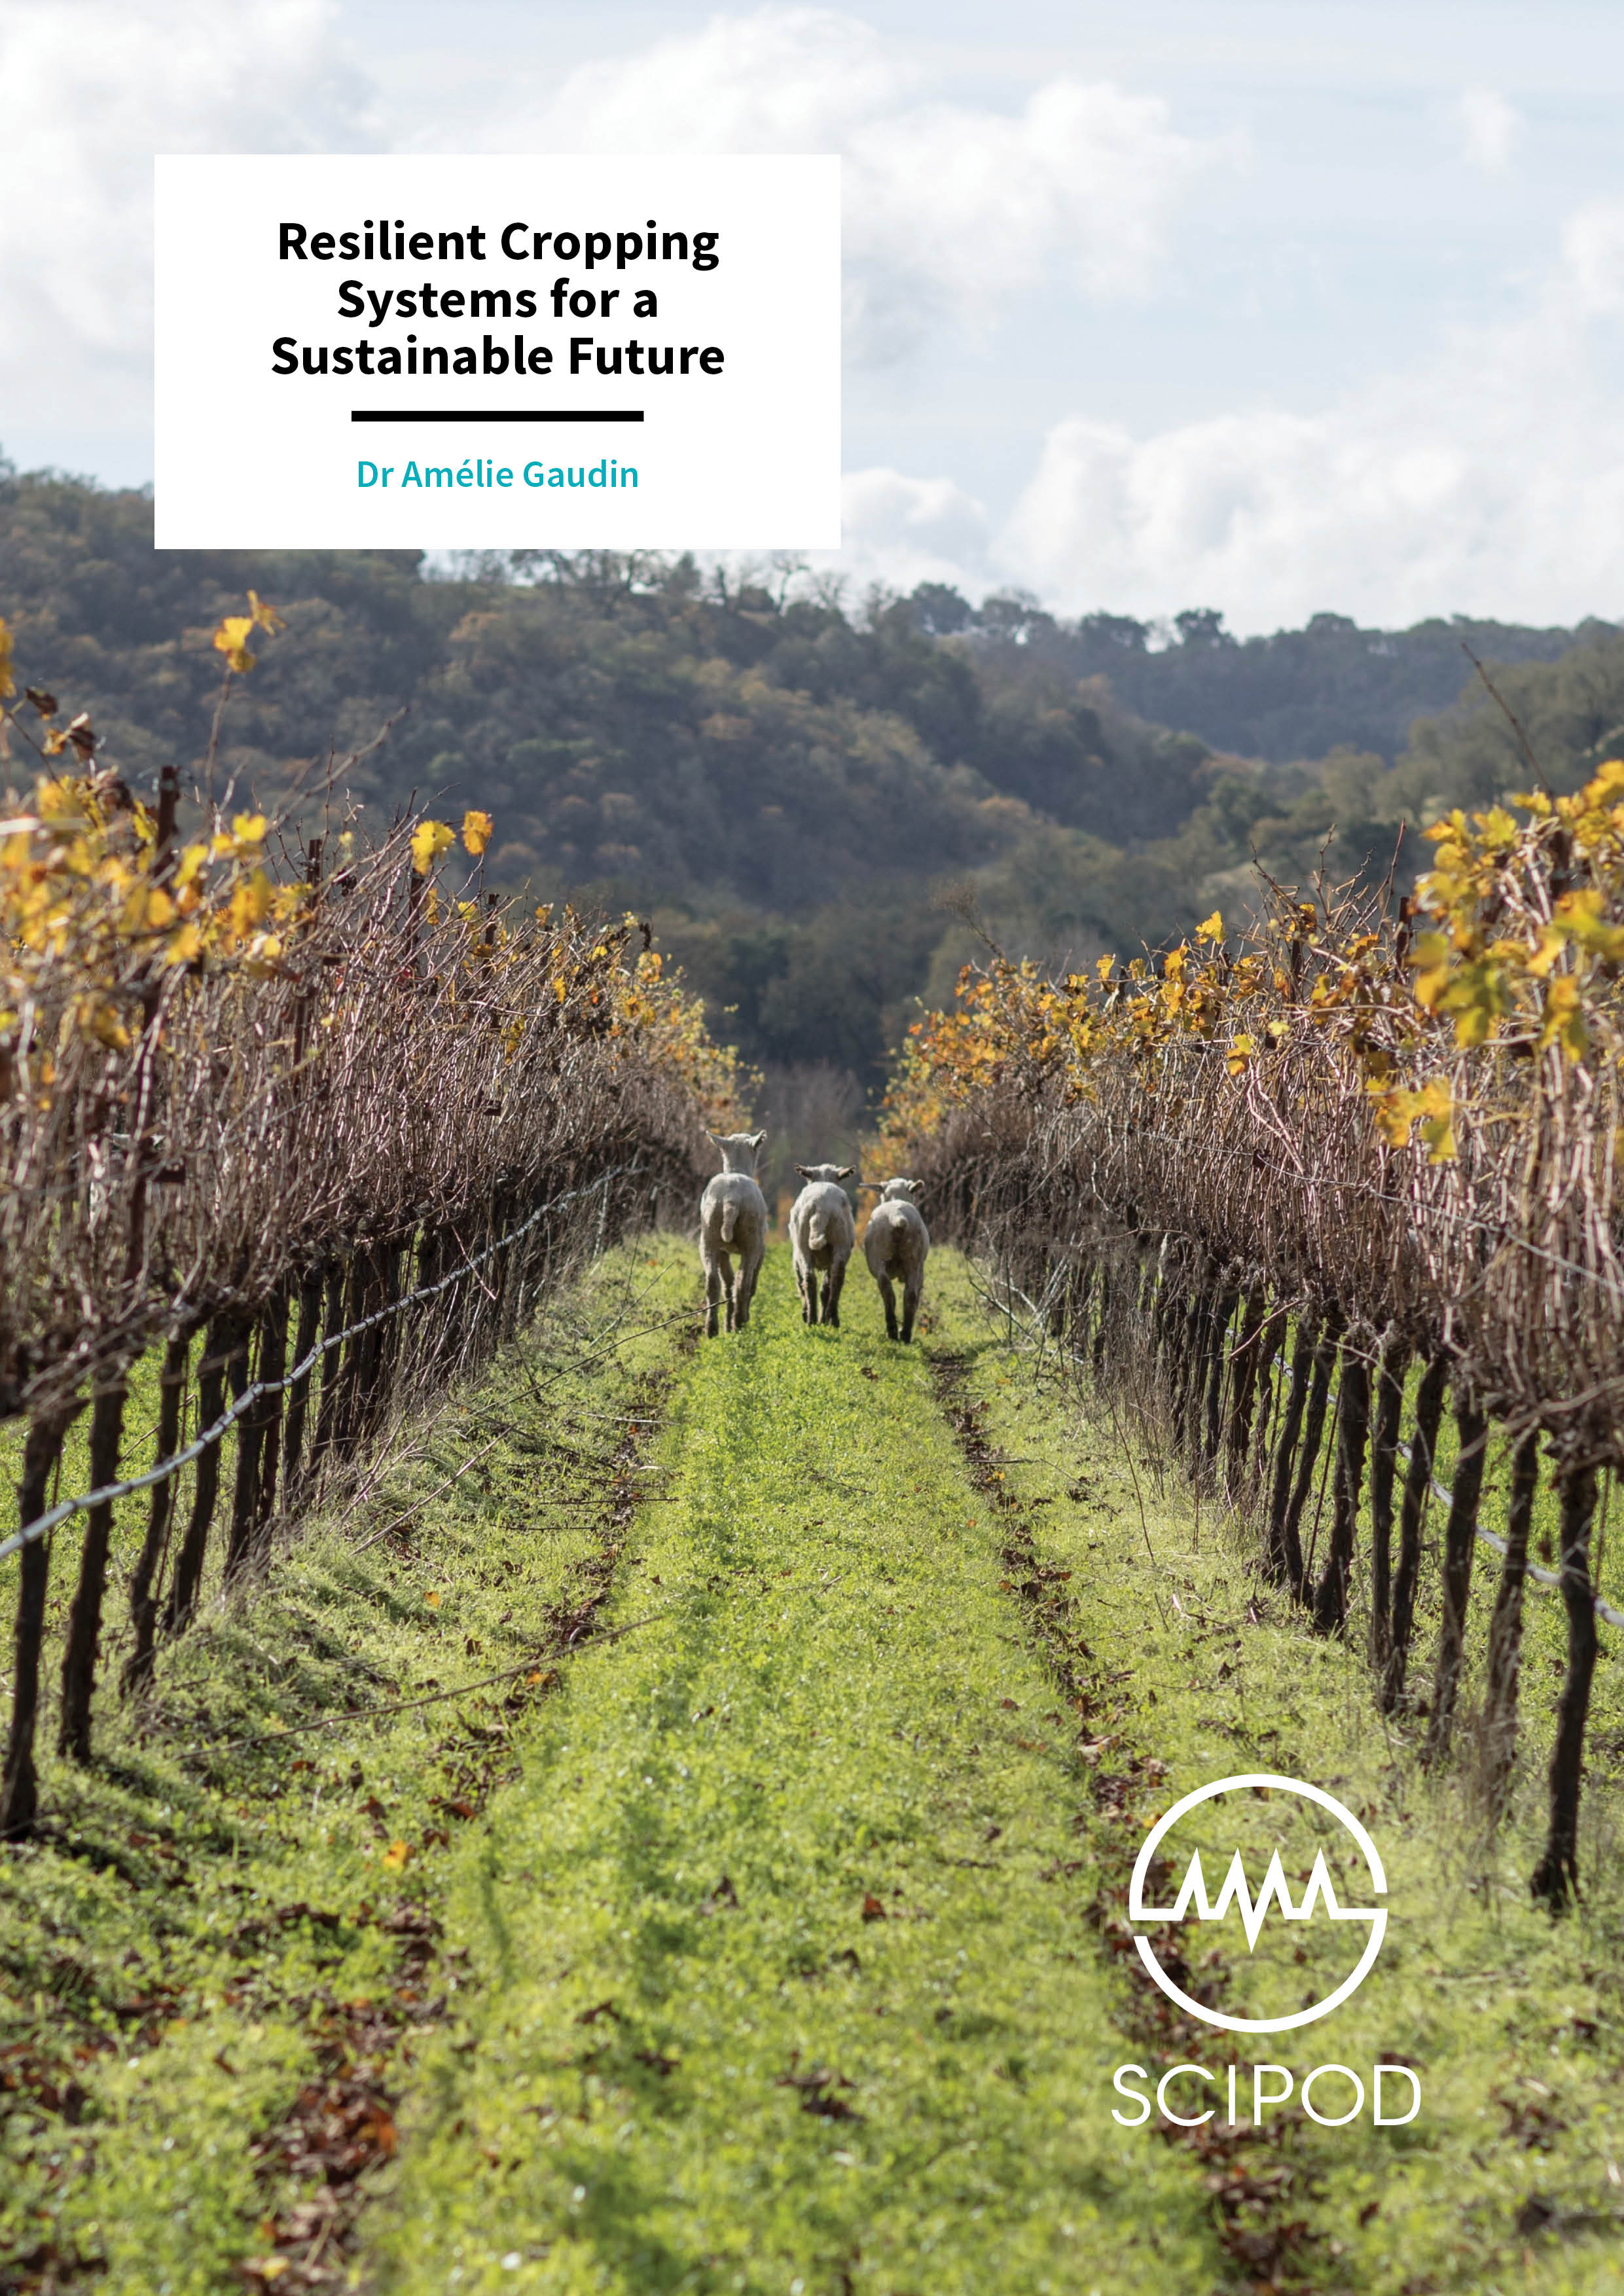 Resilient Cropping Systems for a Sustainable Future – Dr Amélie Gaudin, University of California, Davis